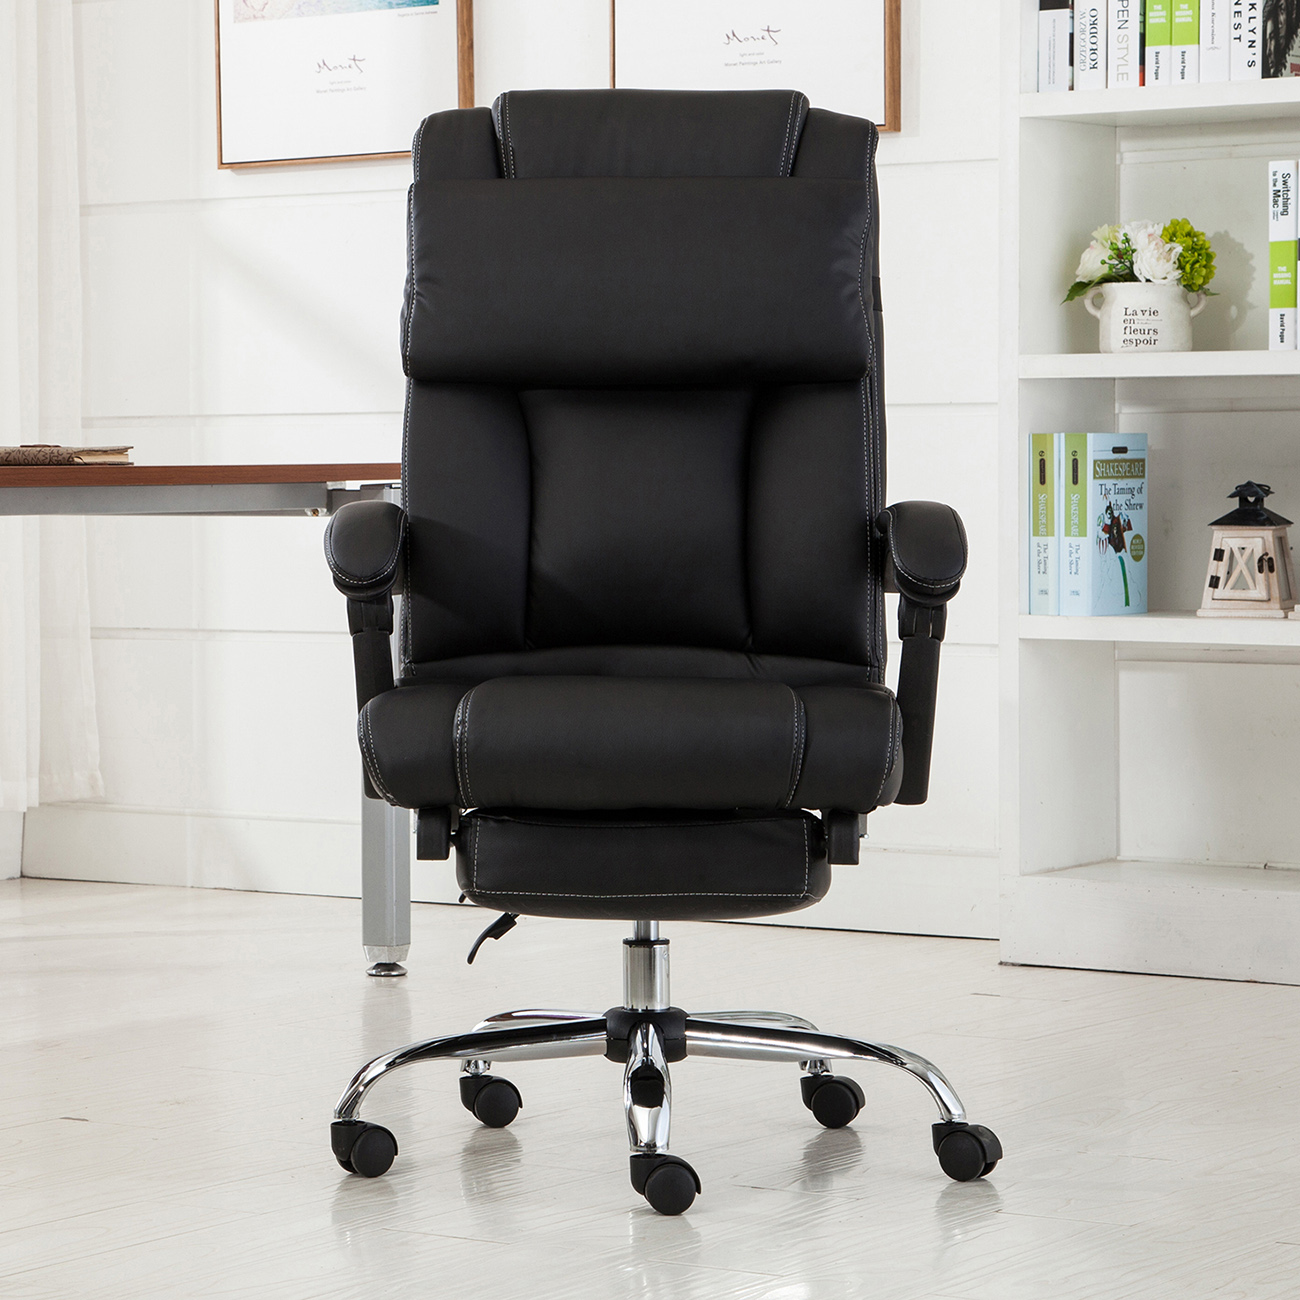 reclining office chair with footrest india types of folding chairs executive ergonomic high back